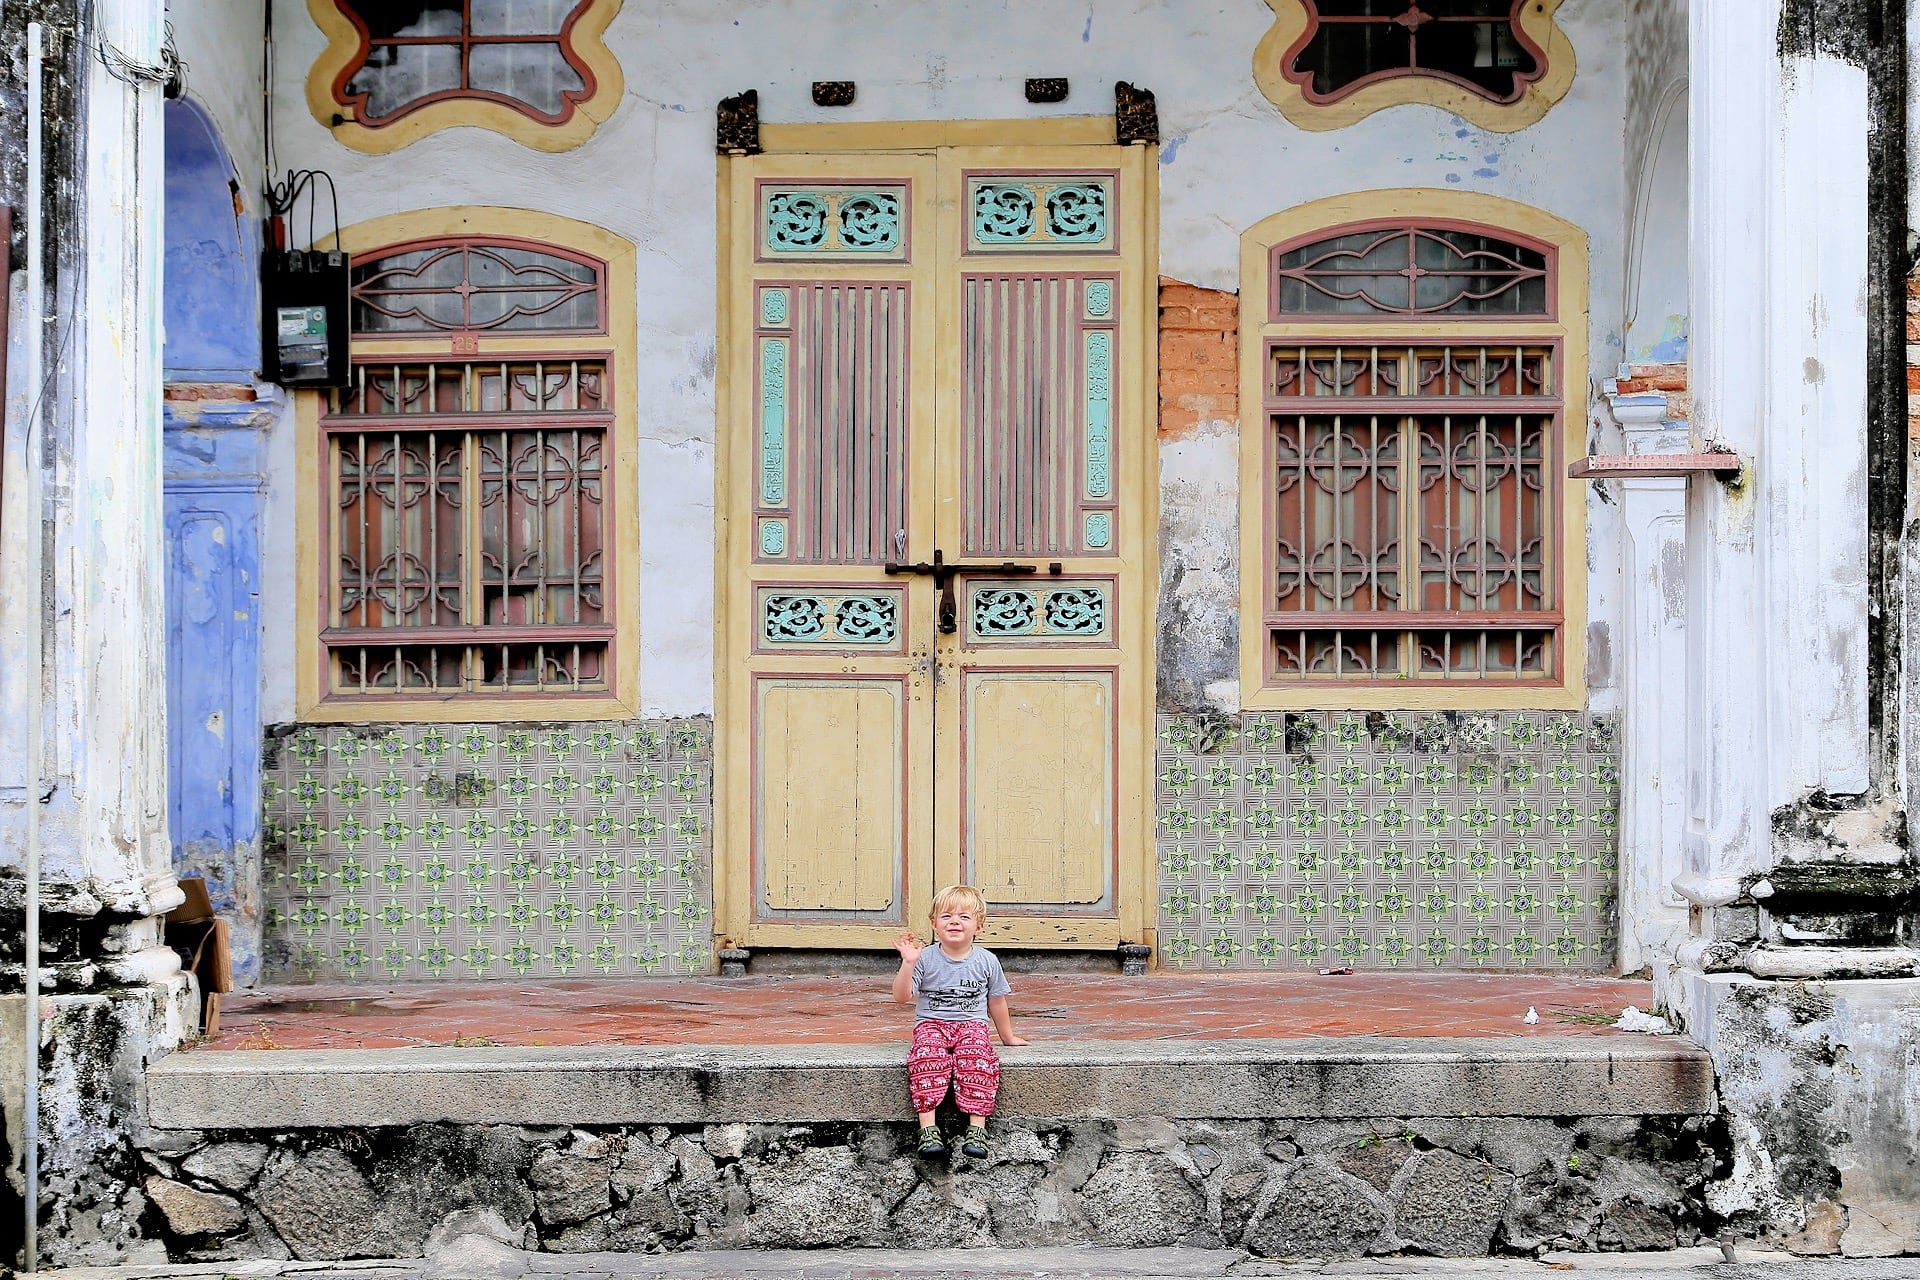 George Town Penang Malaysia things to do in the UNESCO Old Town